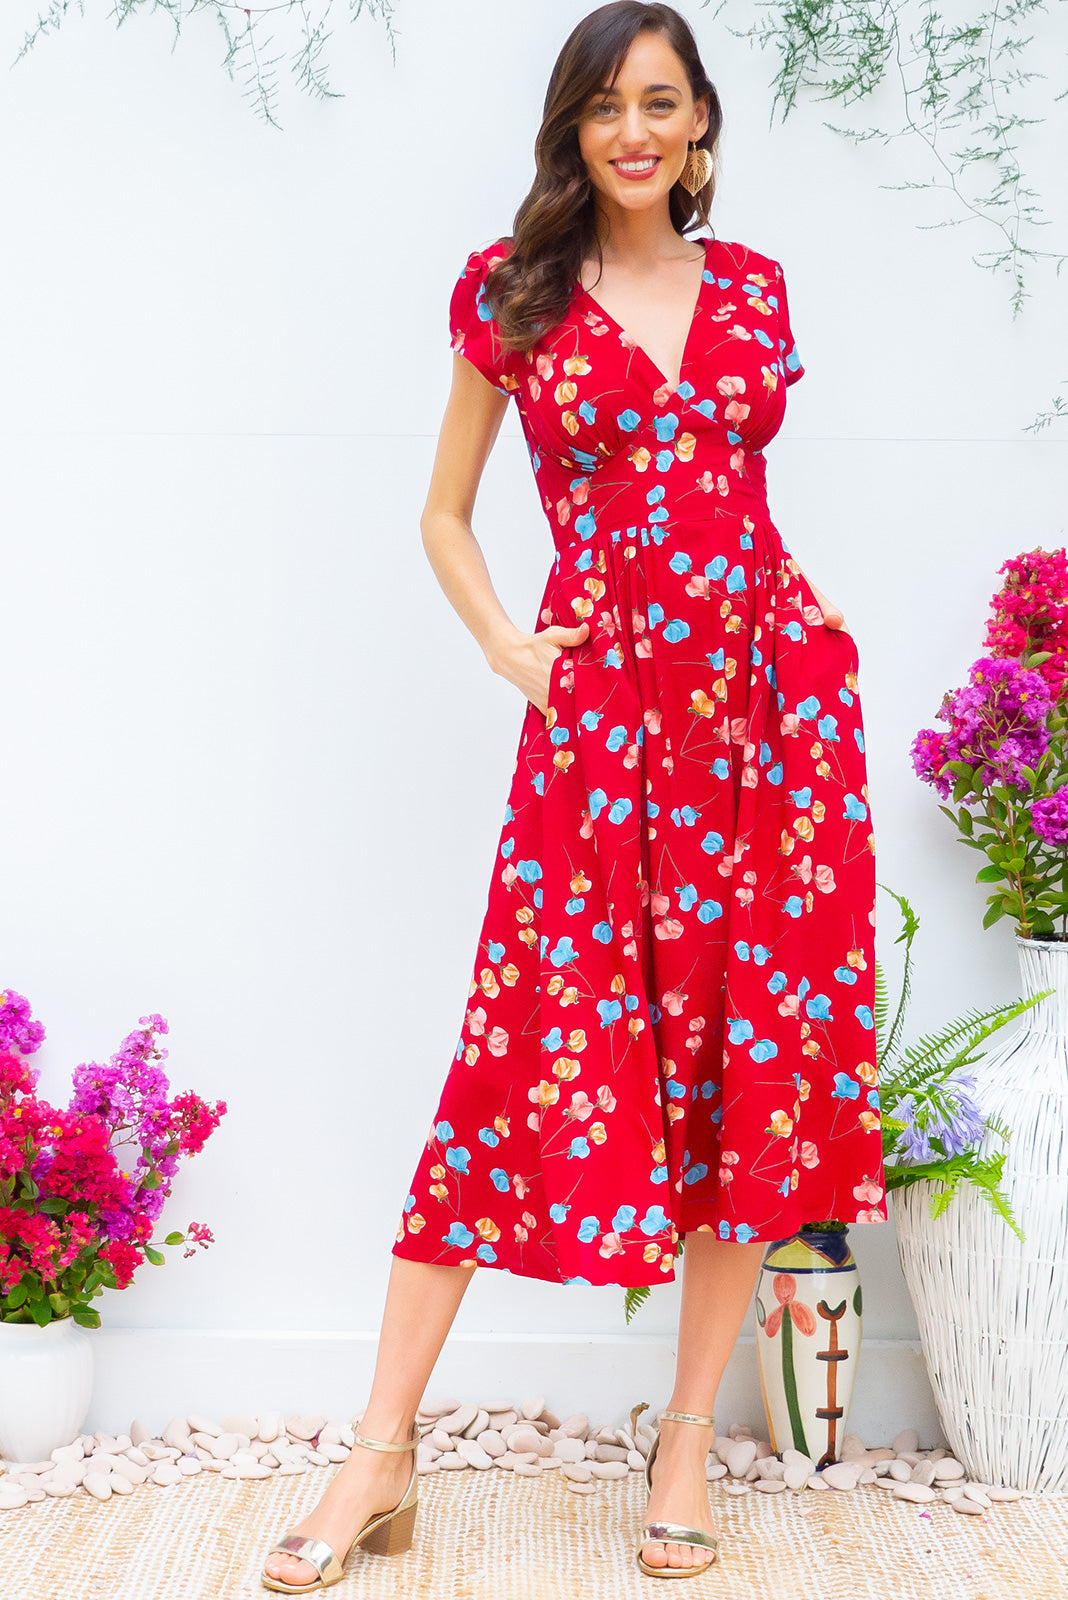 Lizzie Red Poppies Midi dress features a vintage inspired fitted basque waist and elasticated waist with a cap sleeve and deep v neck the fabric is a soft woven rayon in a strong red poppy floral print